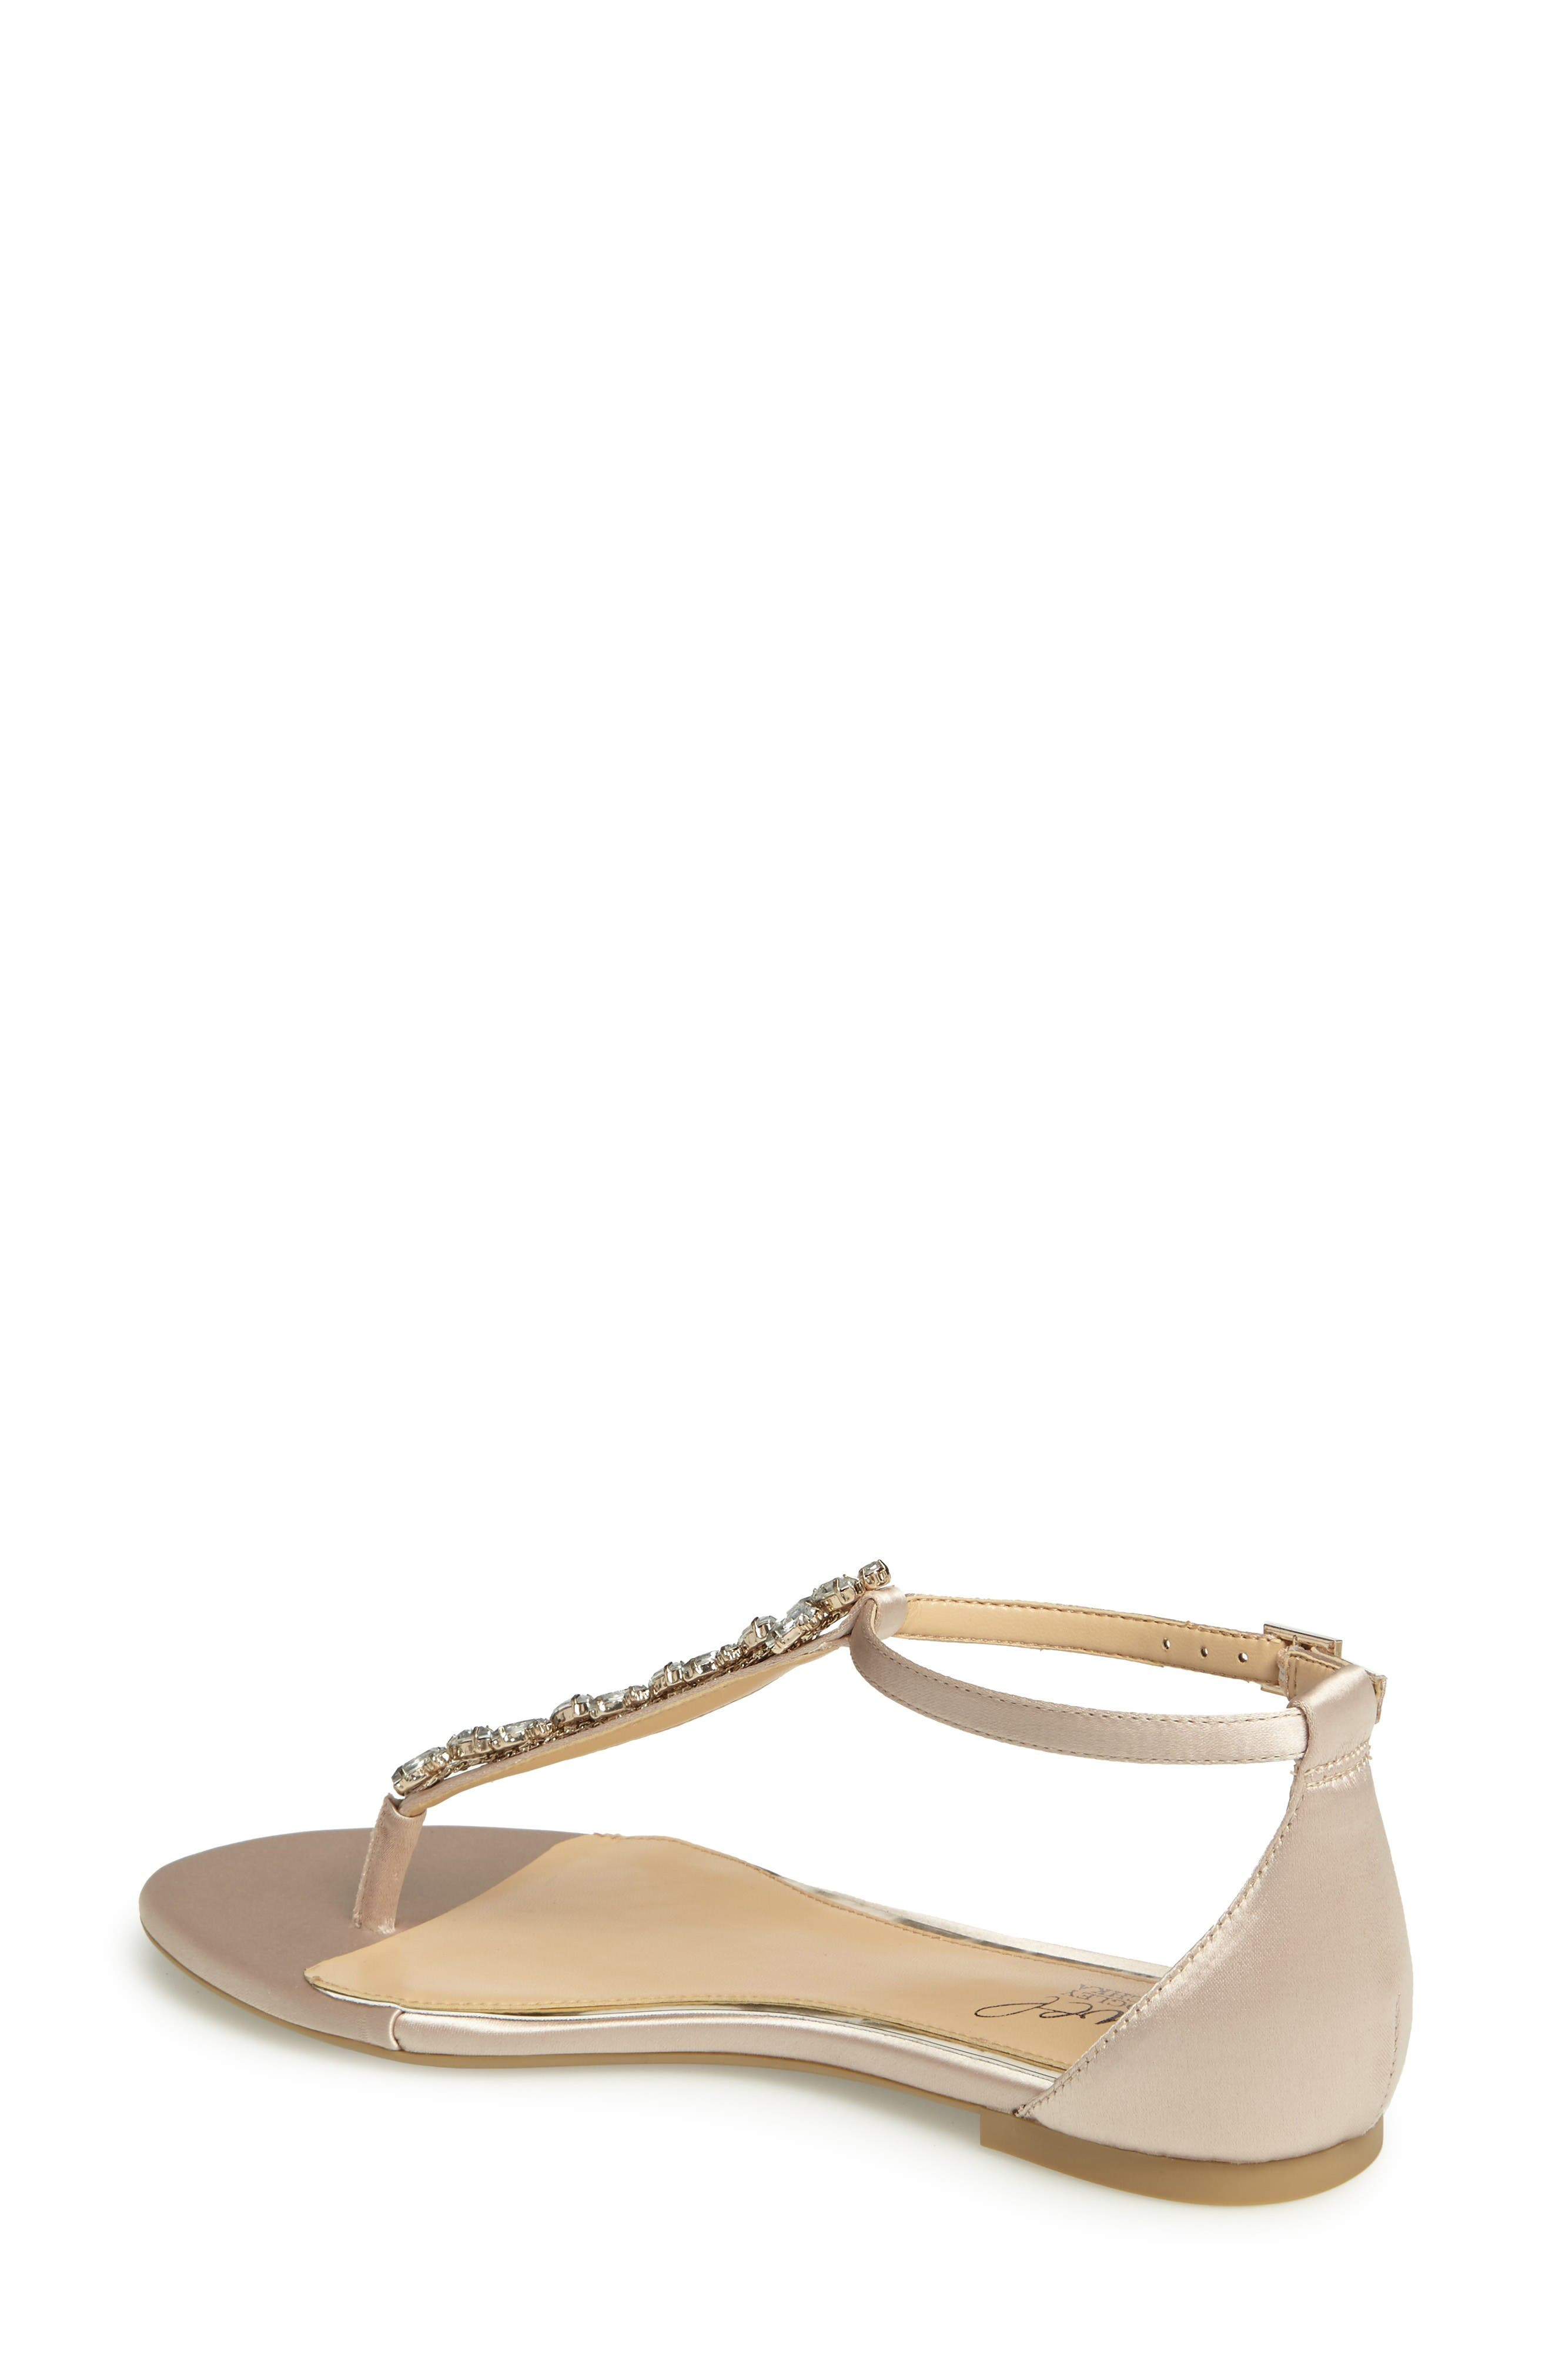 Alternate Image 2  - Jewel Badgley Mischka Carrol Embellished T-Strap Sandal (Women)